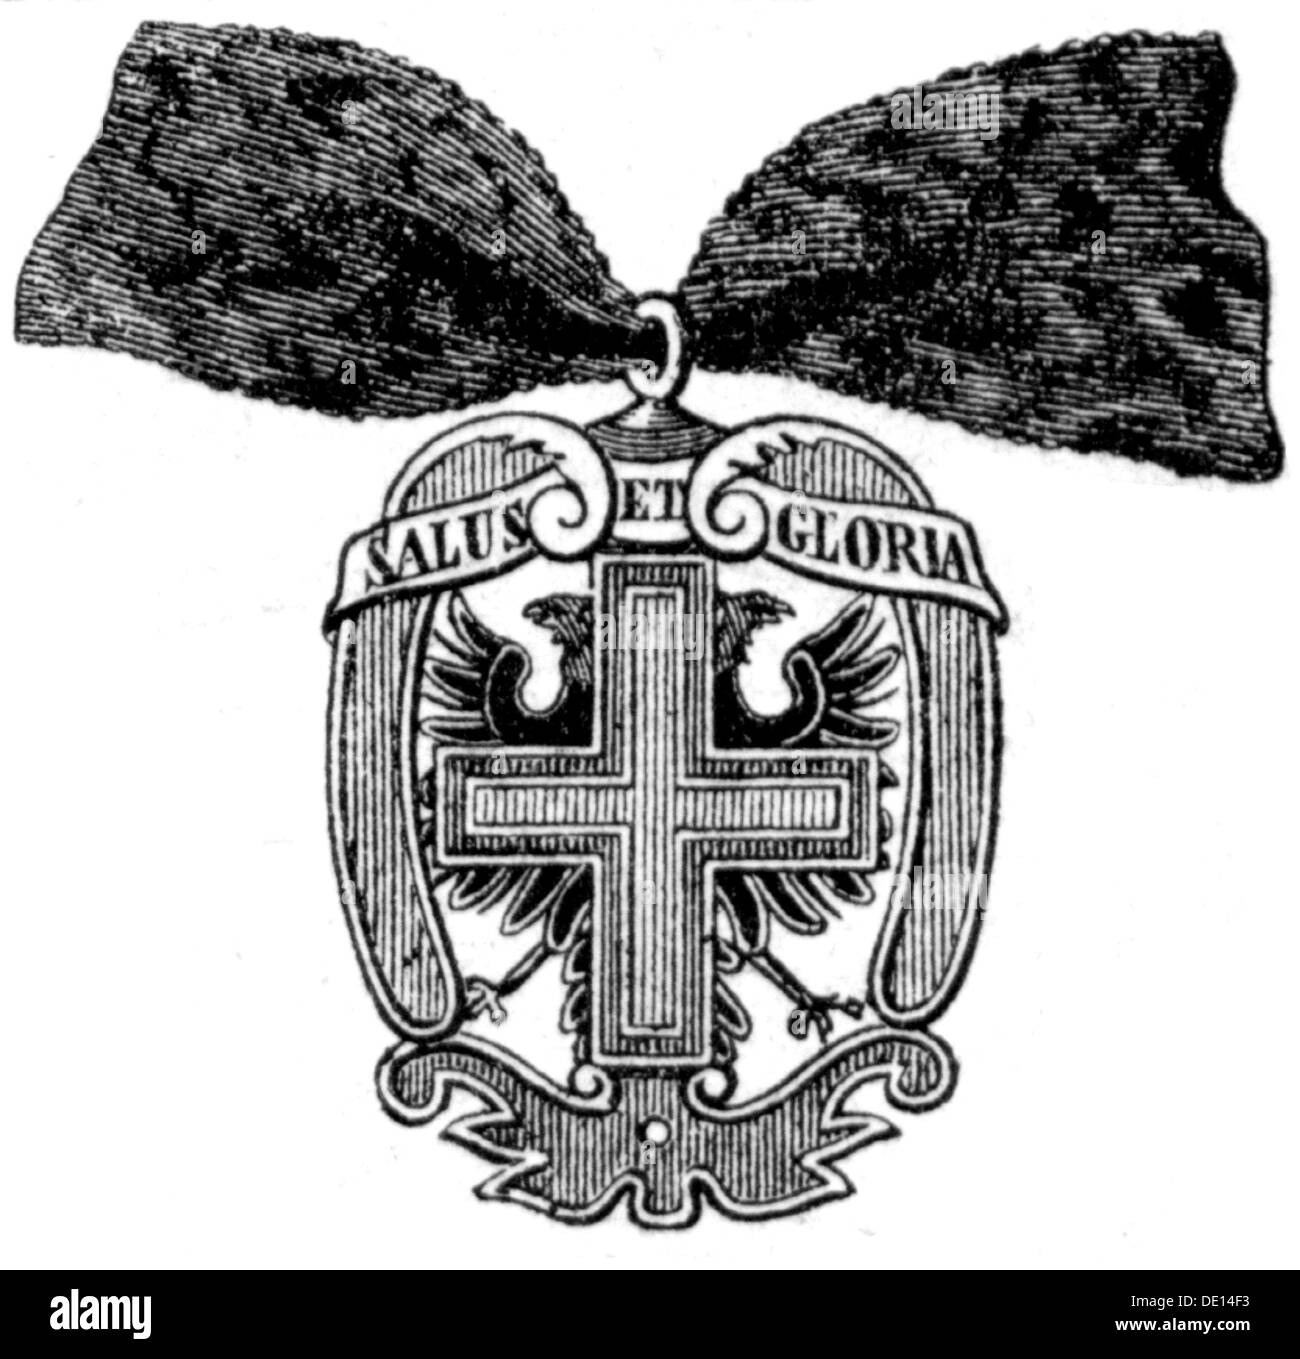 decorations, Austria, Order of the Starry Cross, founded on 18.9.1668 by Empress Eleanor, badge, wood engraving, 2nd half 19th century, Ladies' Order, cross, crosses, eagles, double-headed eagle, two-headed eagle, double, Austrian Empire, founded, founding, historic, historical, Additional-Rights-Clearences-NA - Stock Image